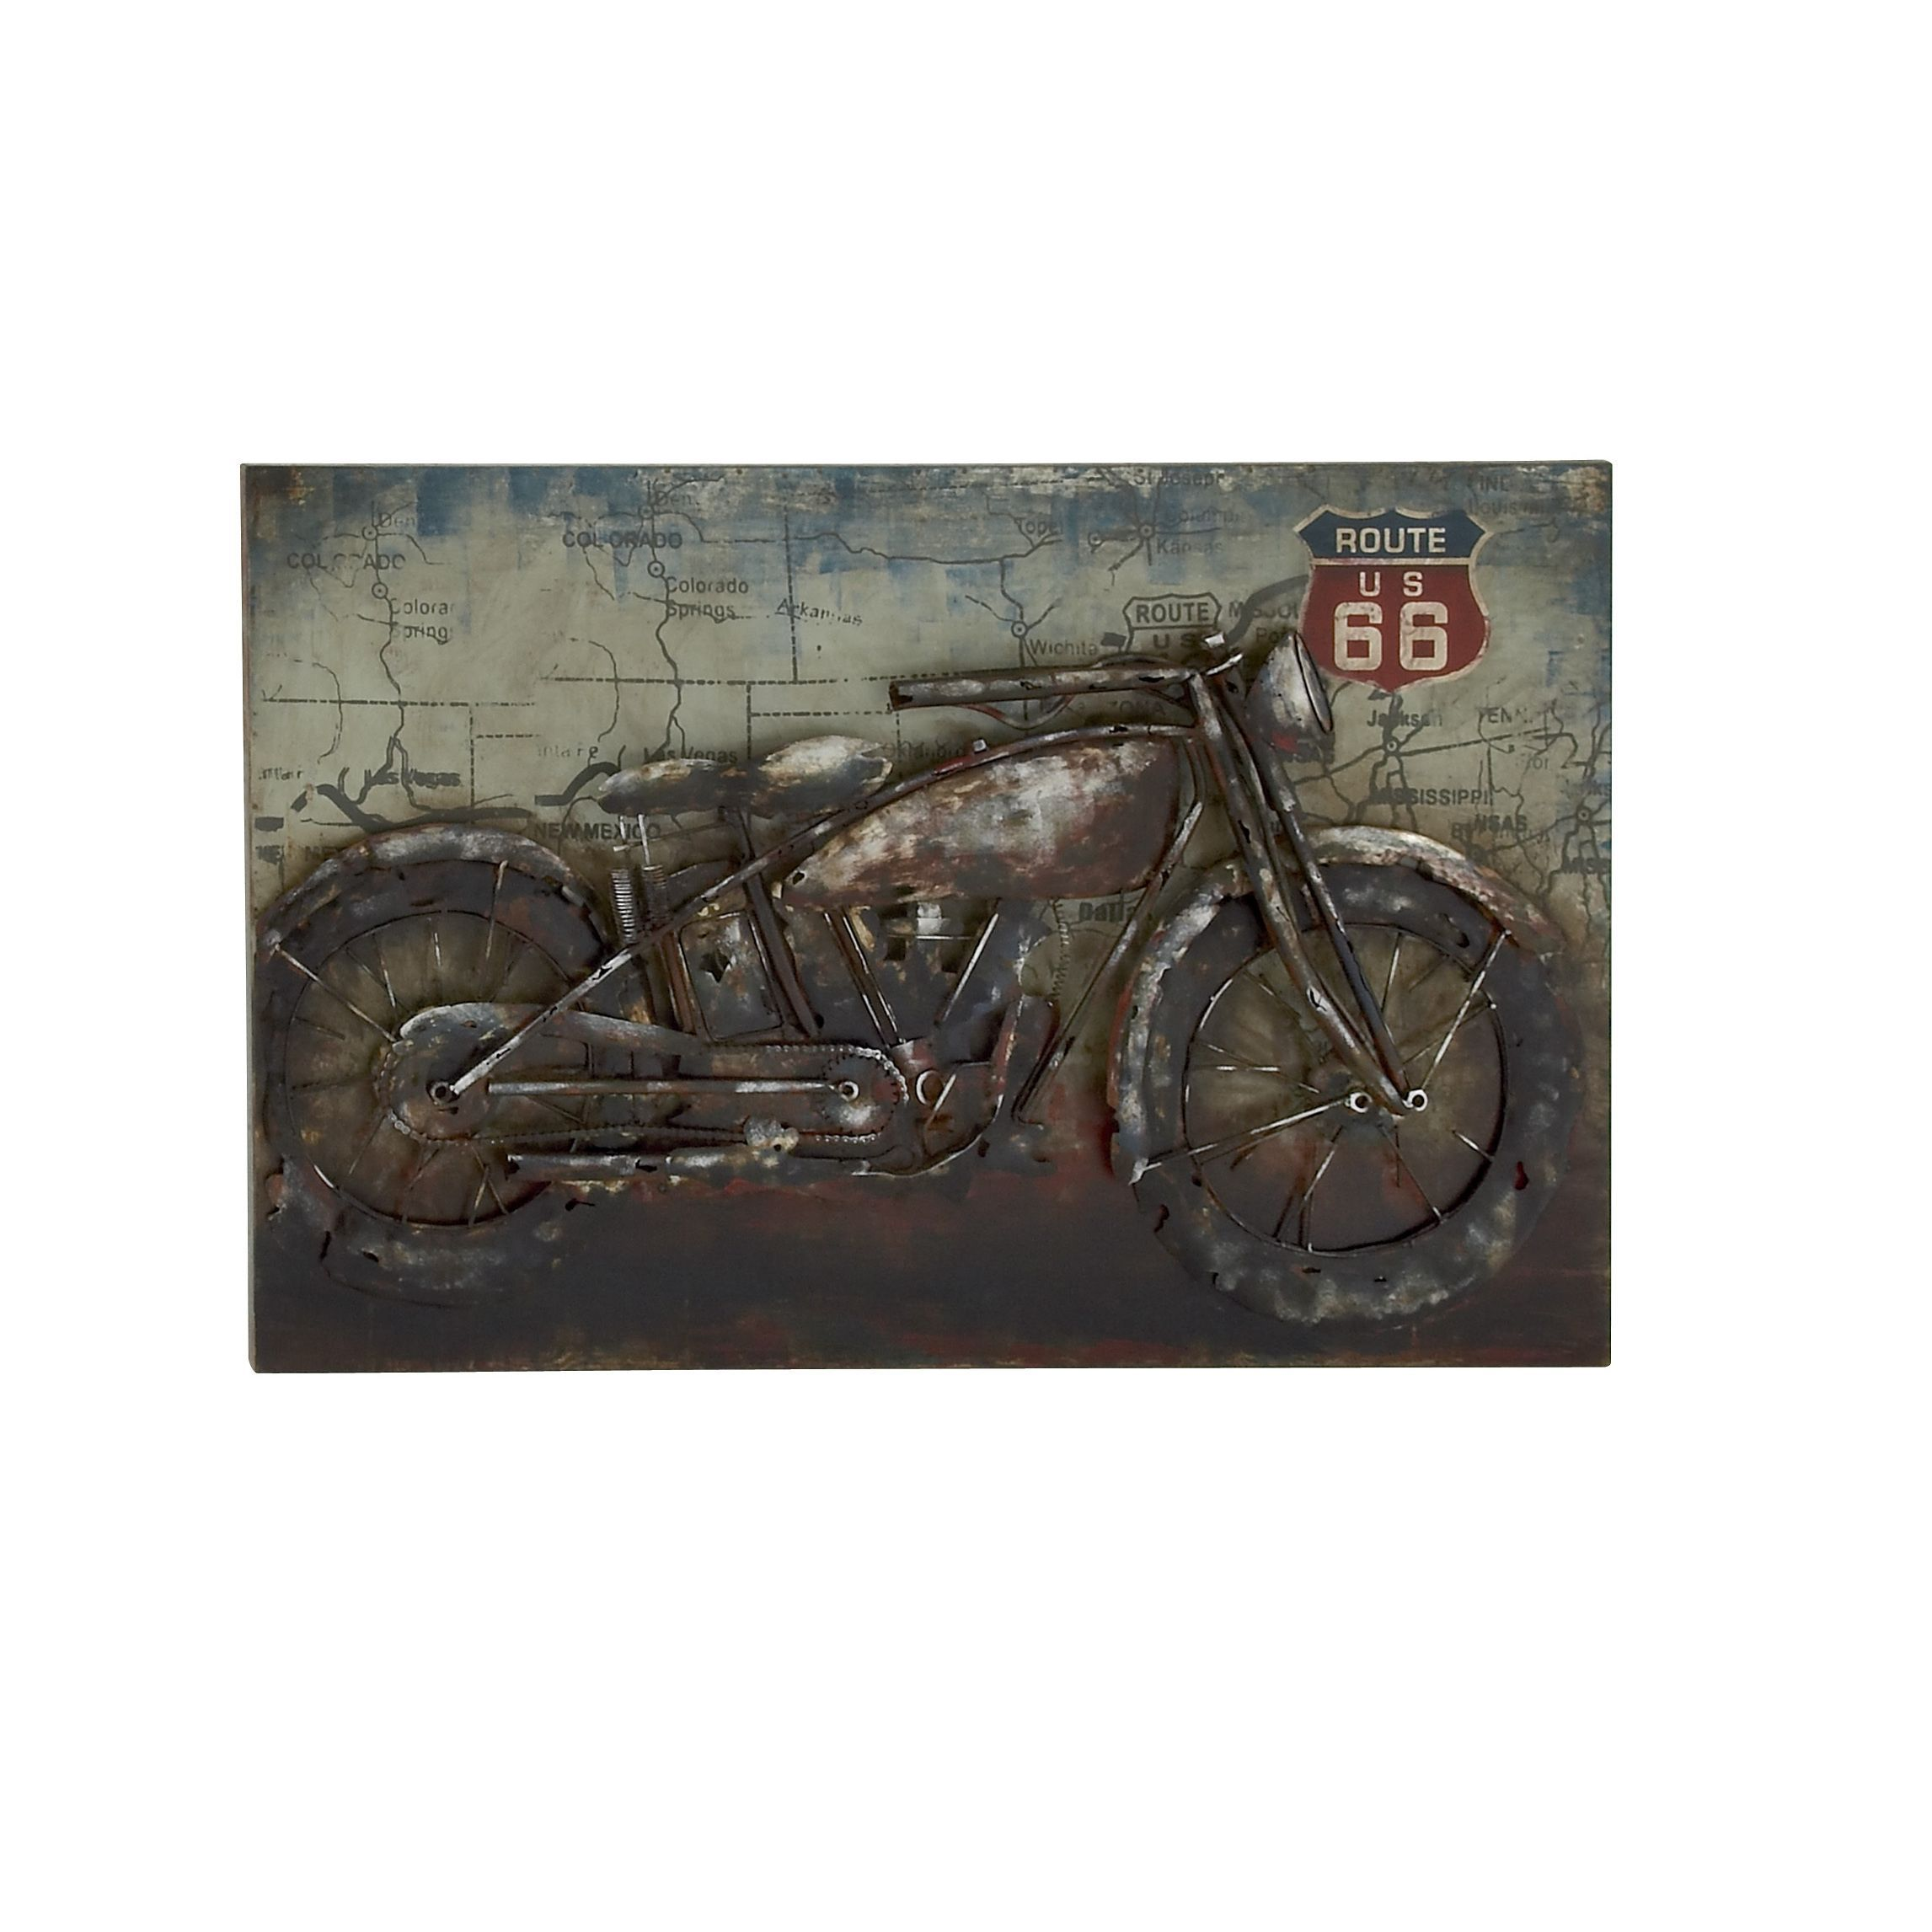 Abstract Route 66 Metal Motorcycle Wall Decor By Studio 350 Wall Decor